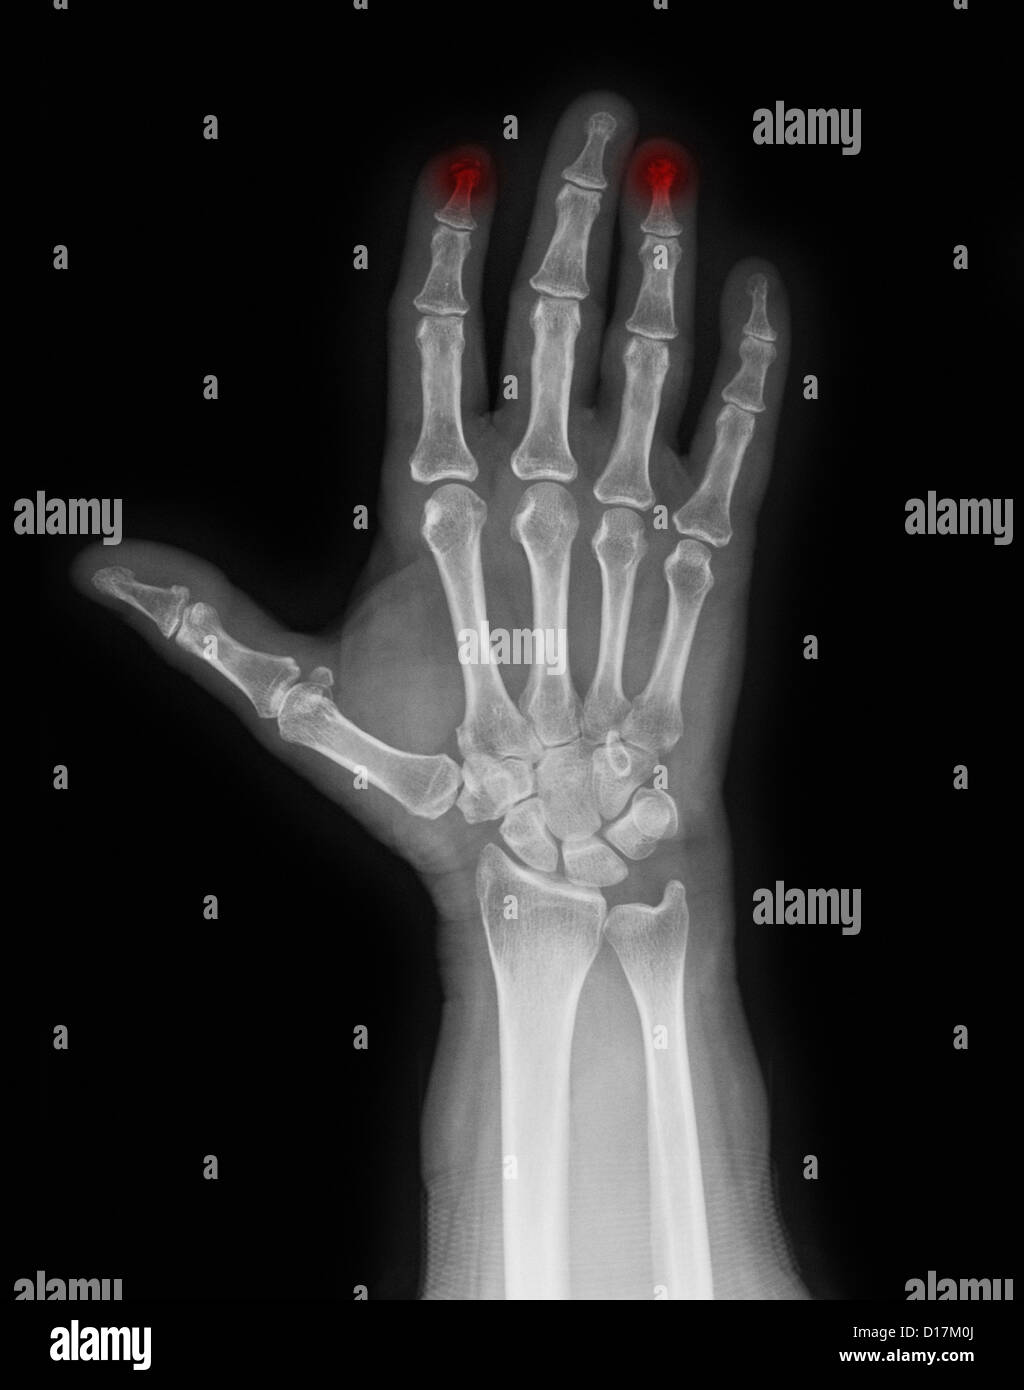 X-ray of hand with crushed index finger - Stock Image